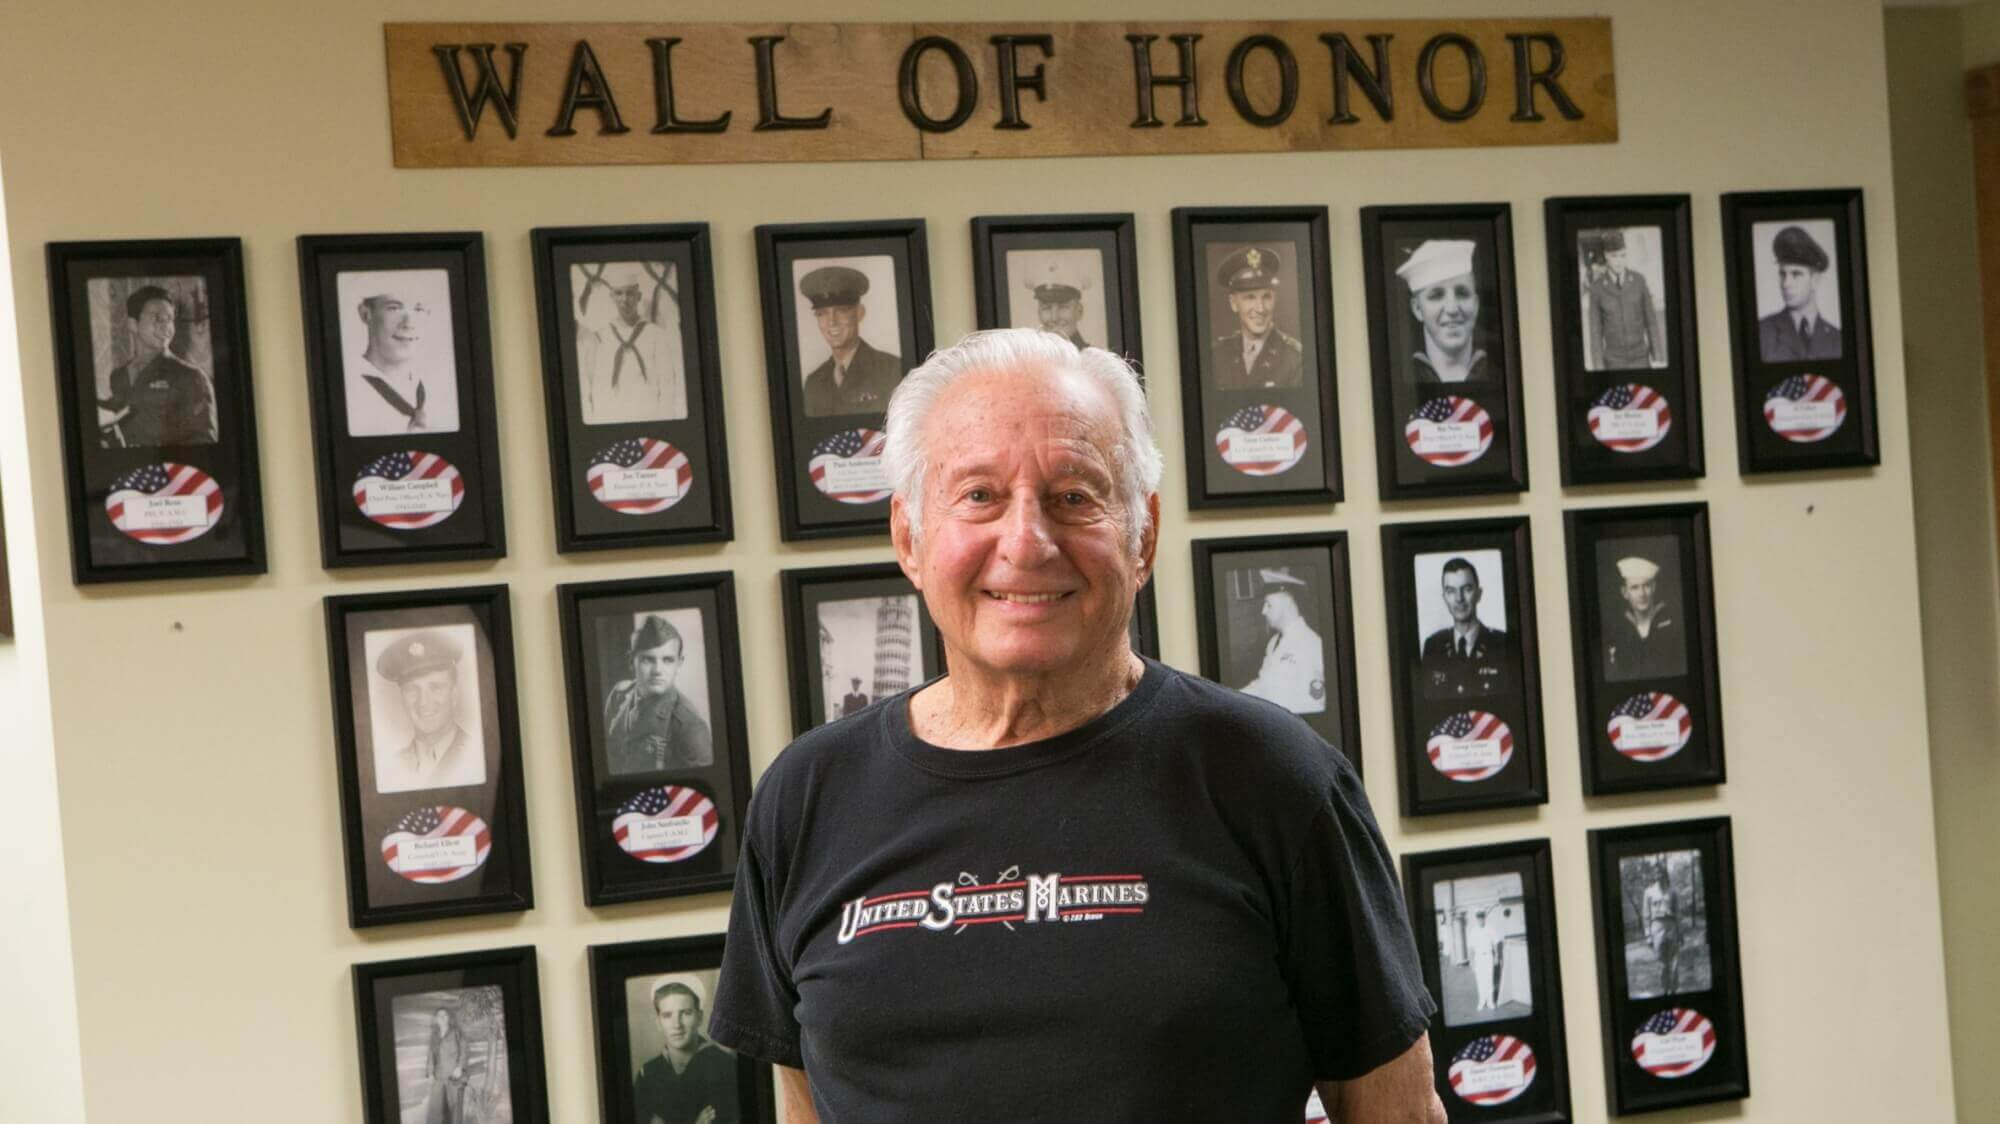 Senior veteran standing in front of the Wall of Honor at Resort Lifestyle Community.